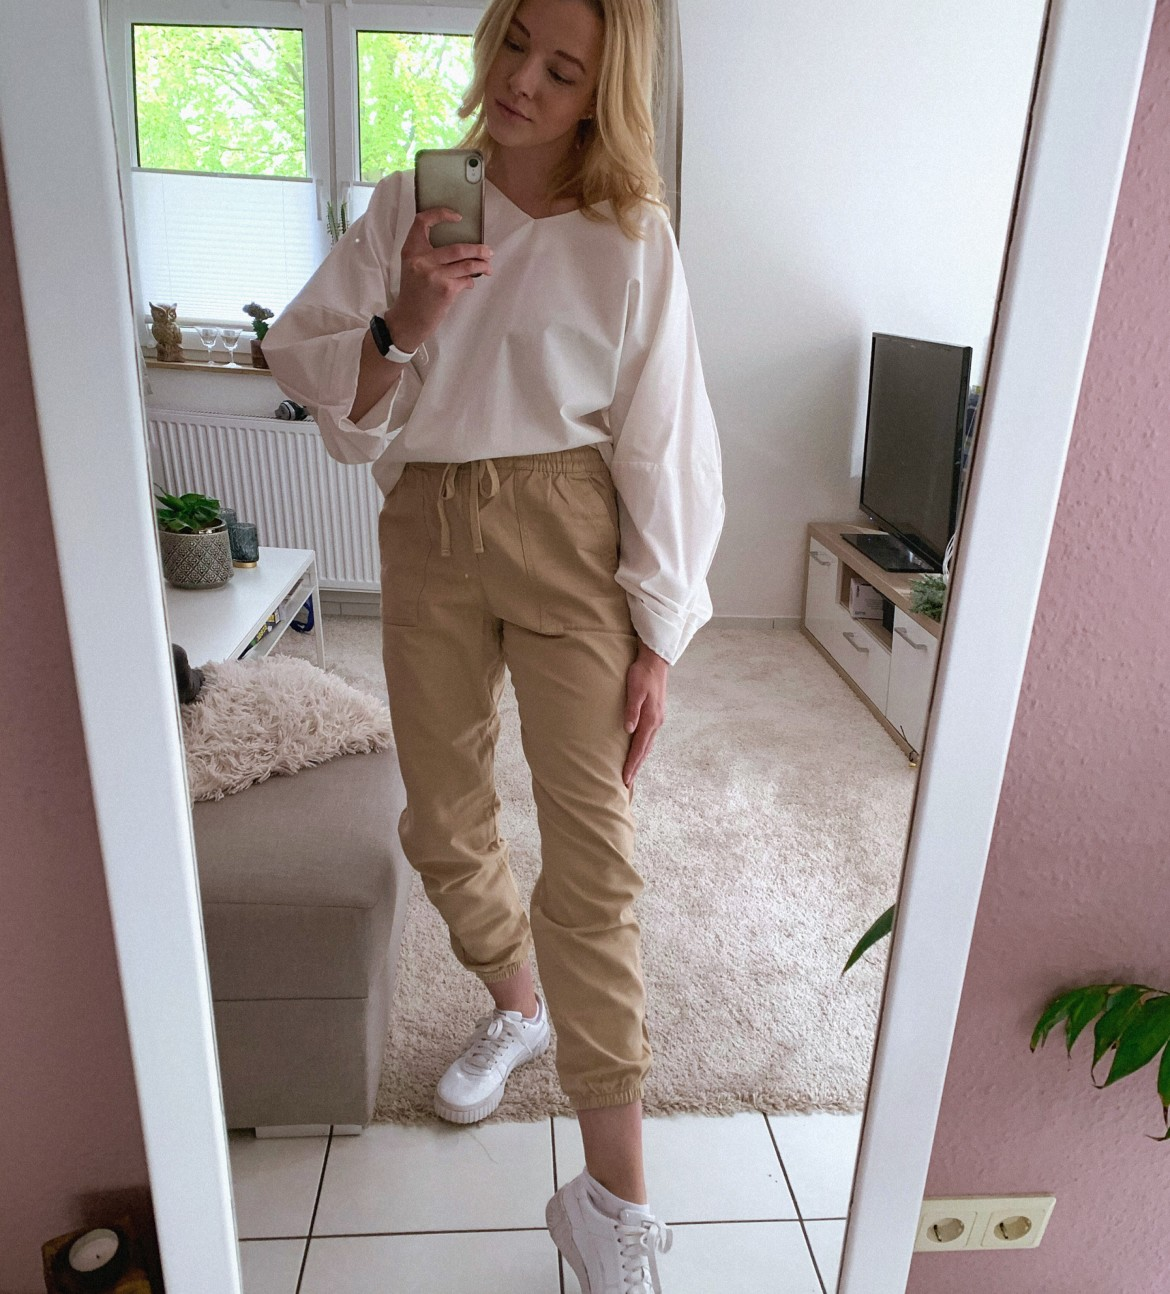 burda style Nutzerkreation Johanna1994 oversized Bluse 🤍